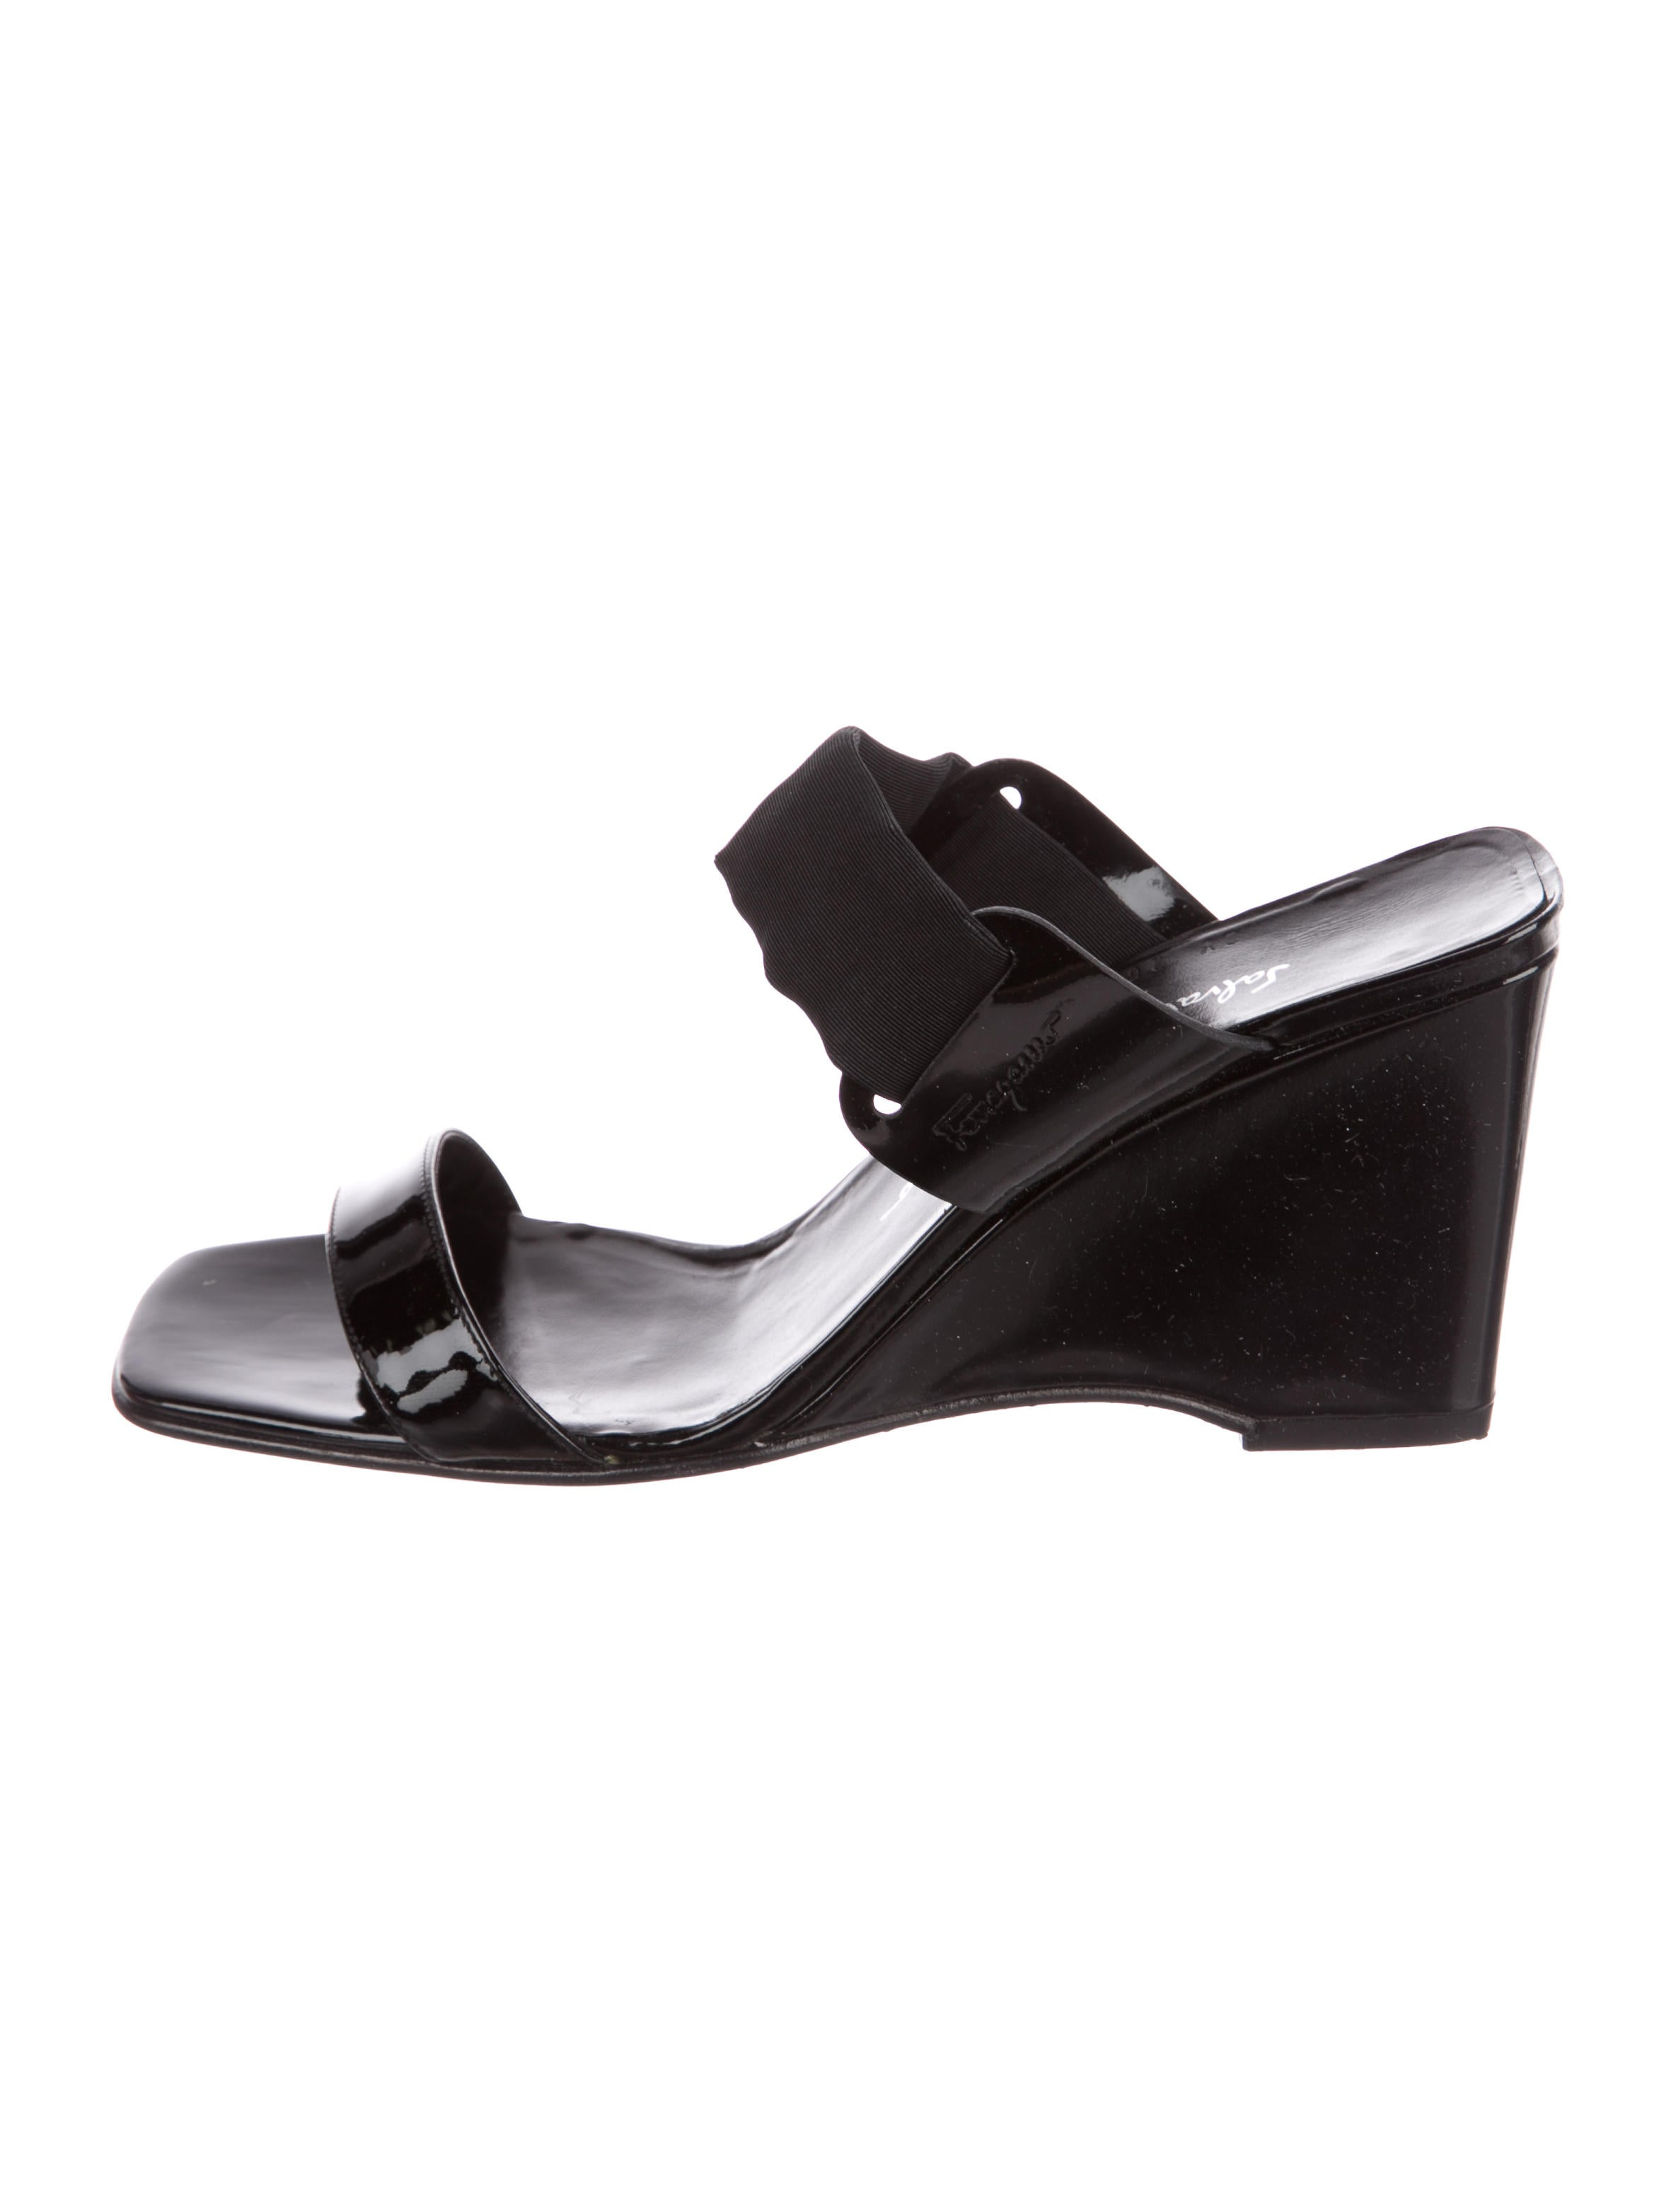 Salvatore Ferragamo Floretta Slide Wedges new sale online 3D1xwDCbv